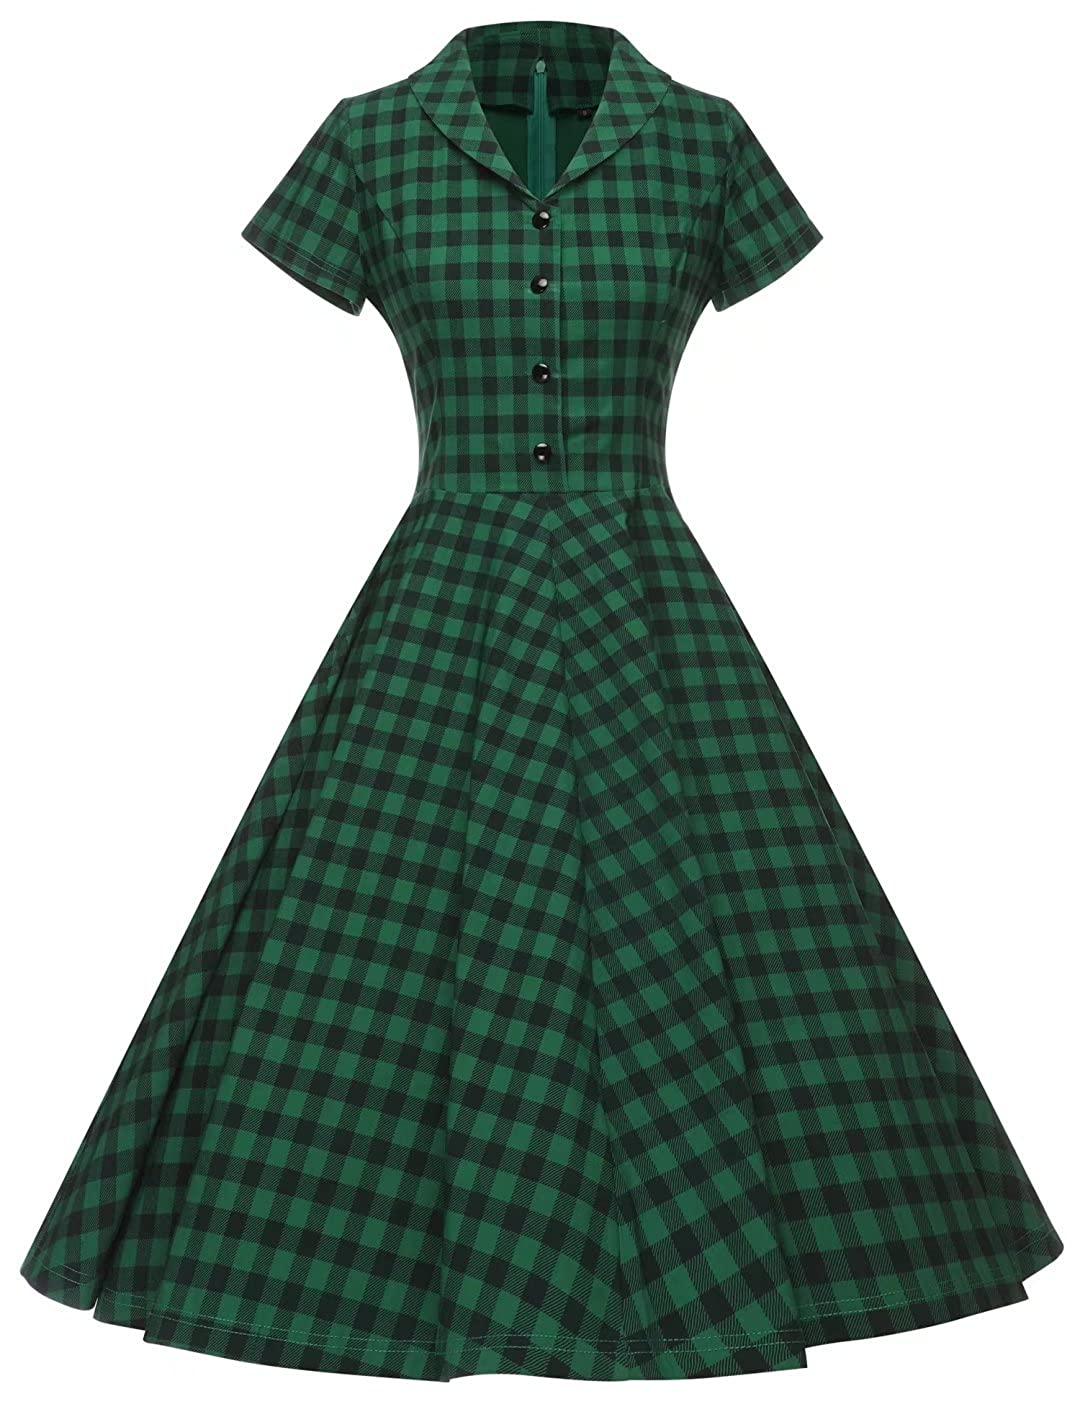 Vintage Christmas Gift Ideas for Women GownTown Womens 1950s Vintage Cap Sleeve Plaid Swing Dress with Pockets $38.98 AT vintagedancer.com